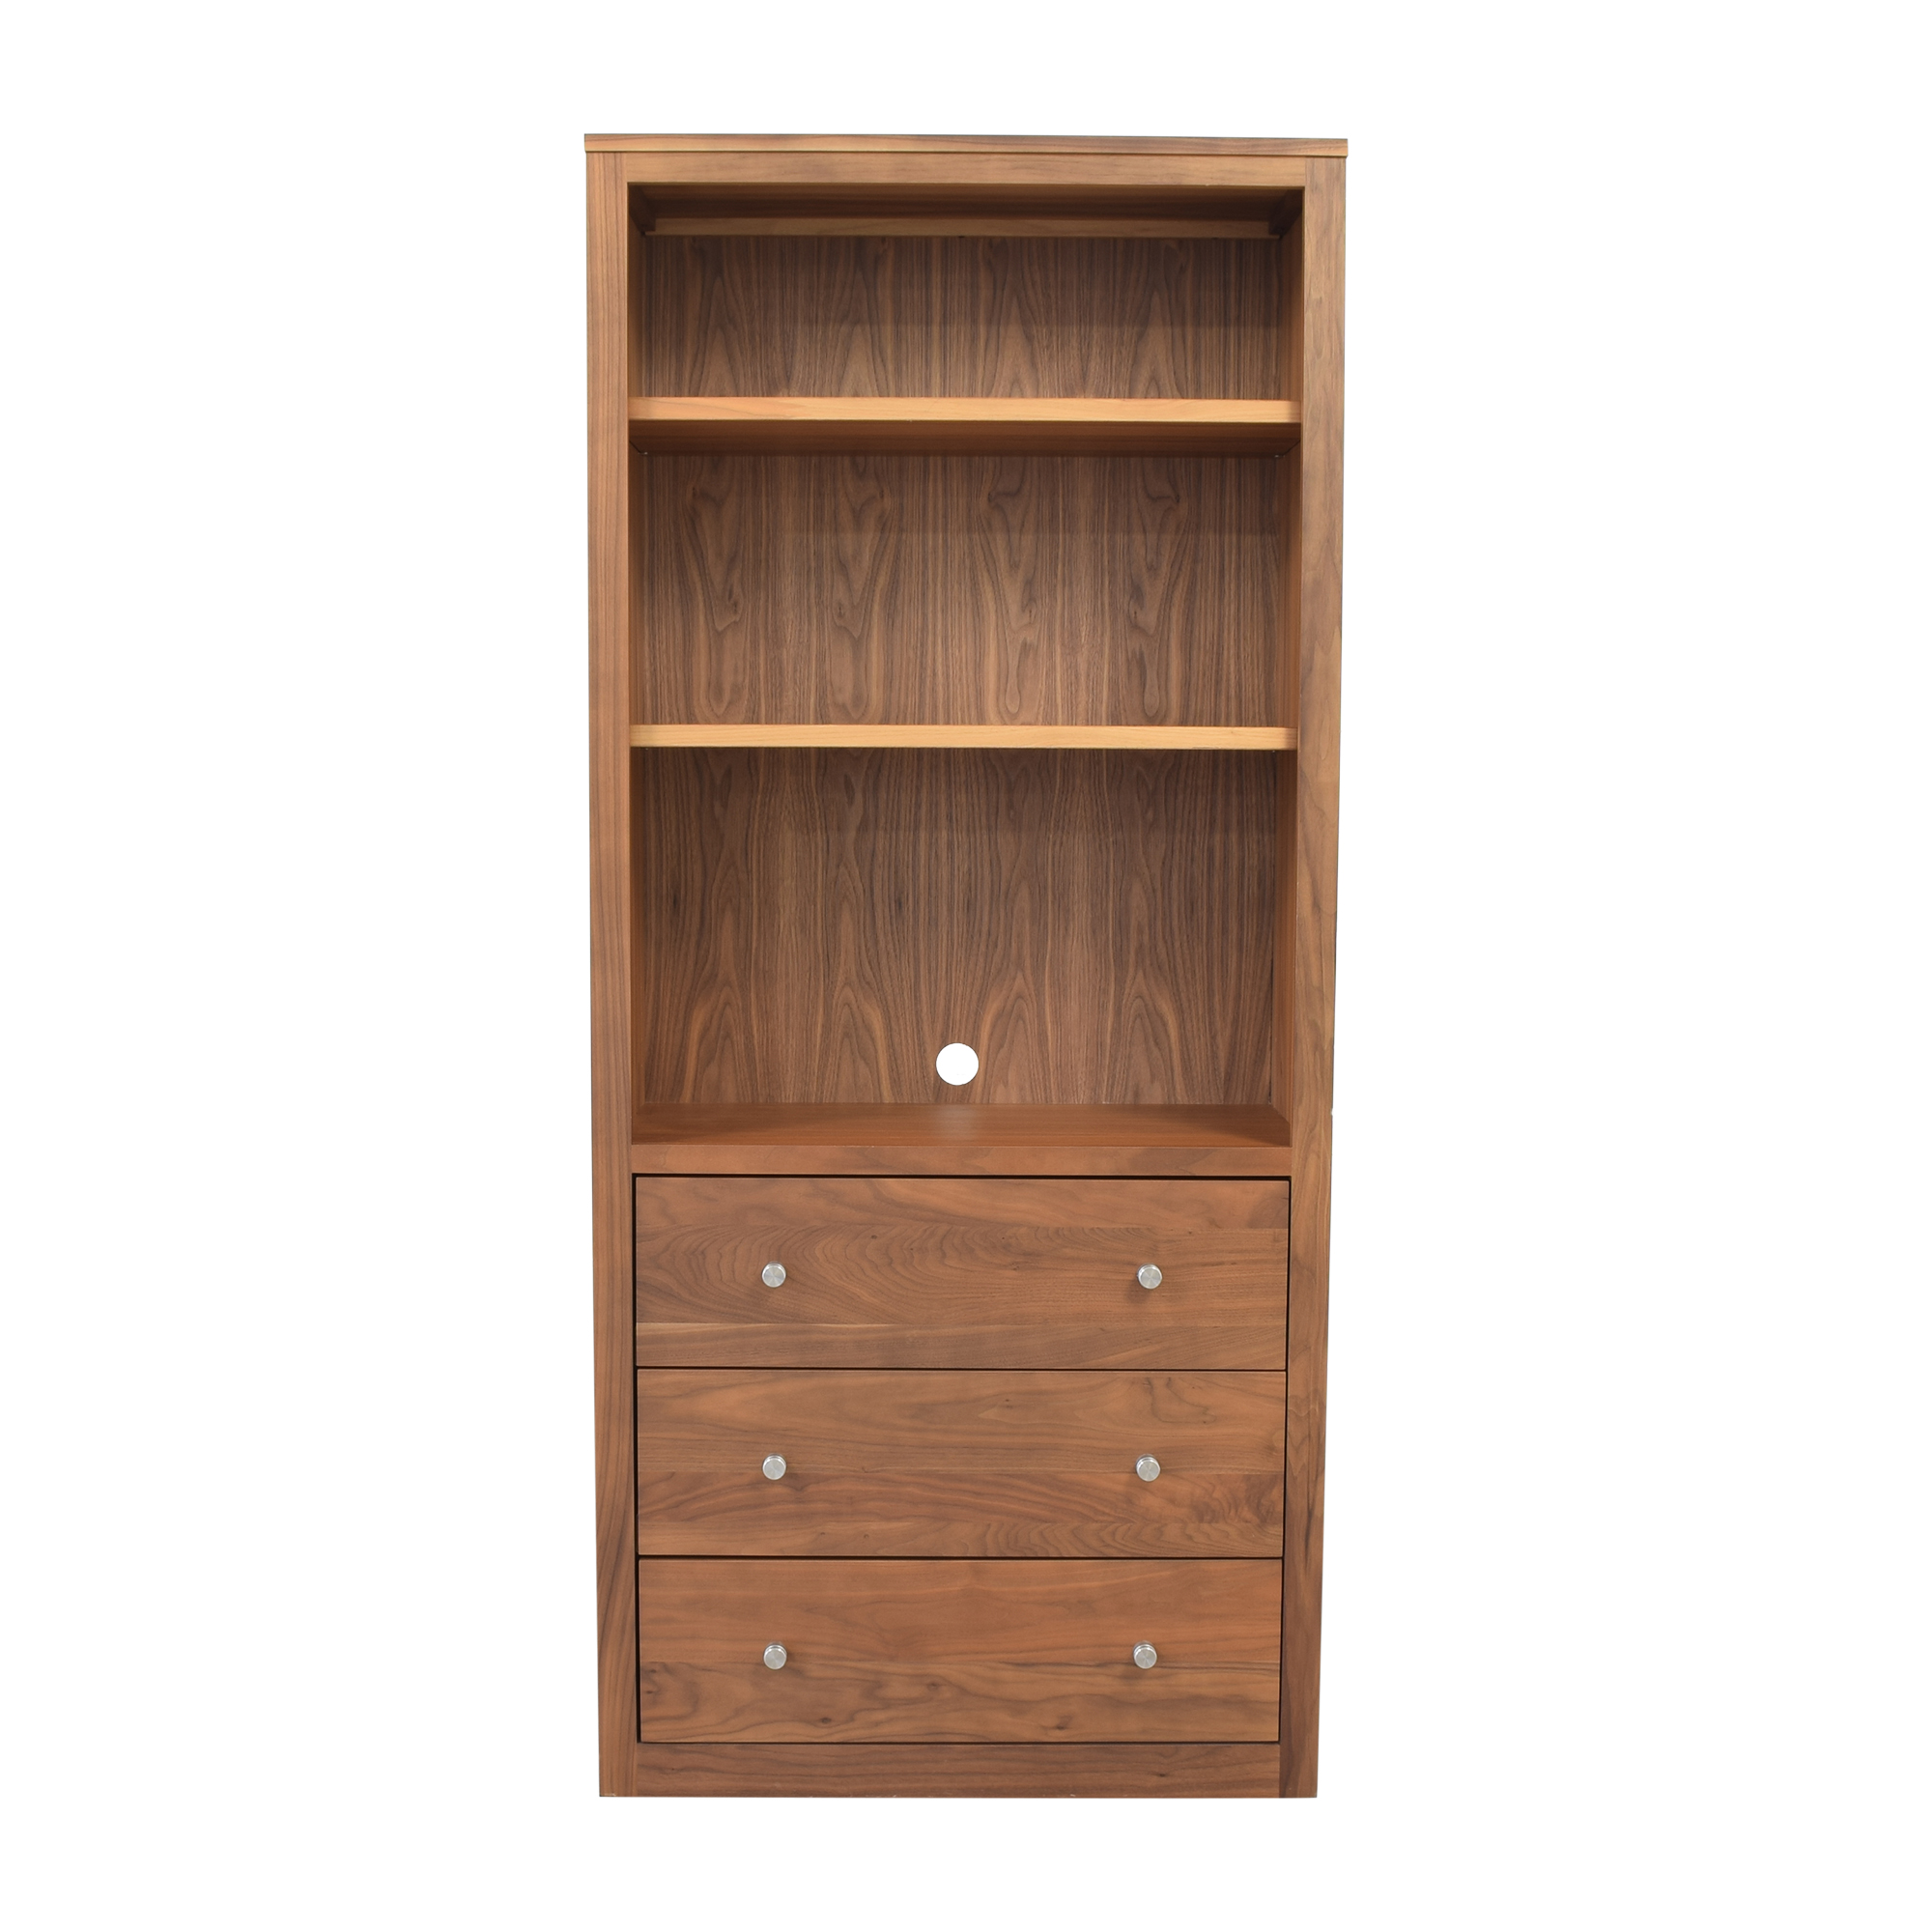 Room & Board Woodwind Bookcase with Drawers sale